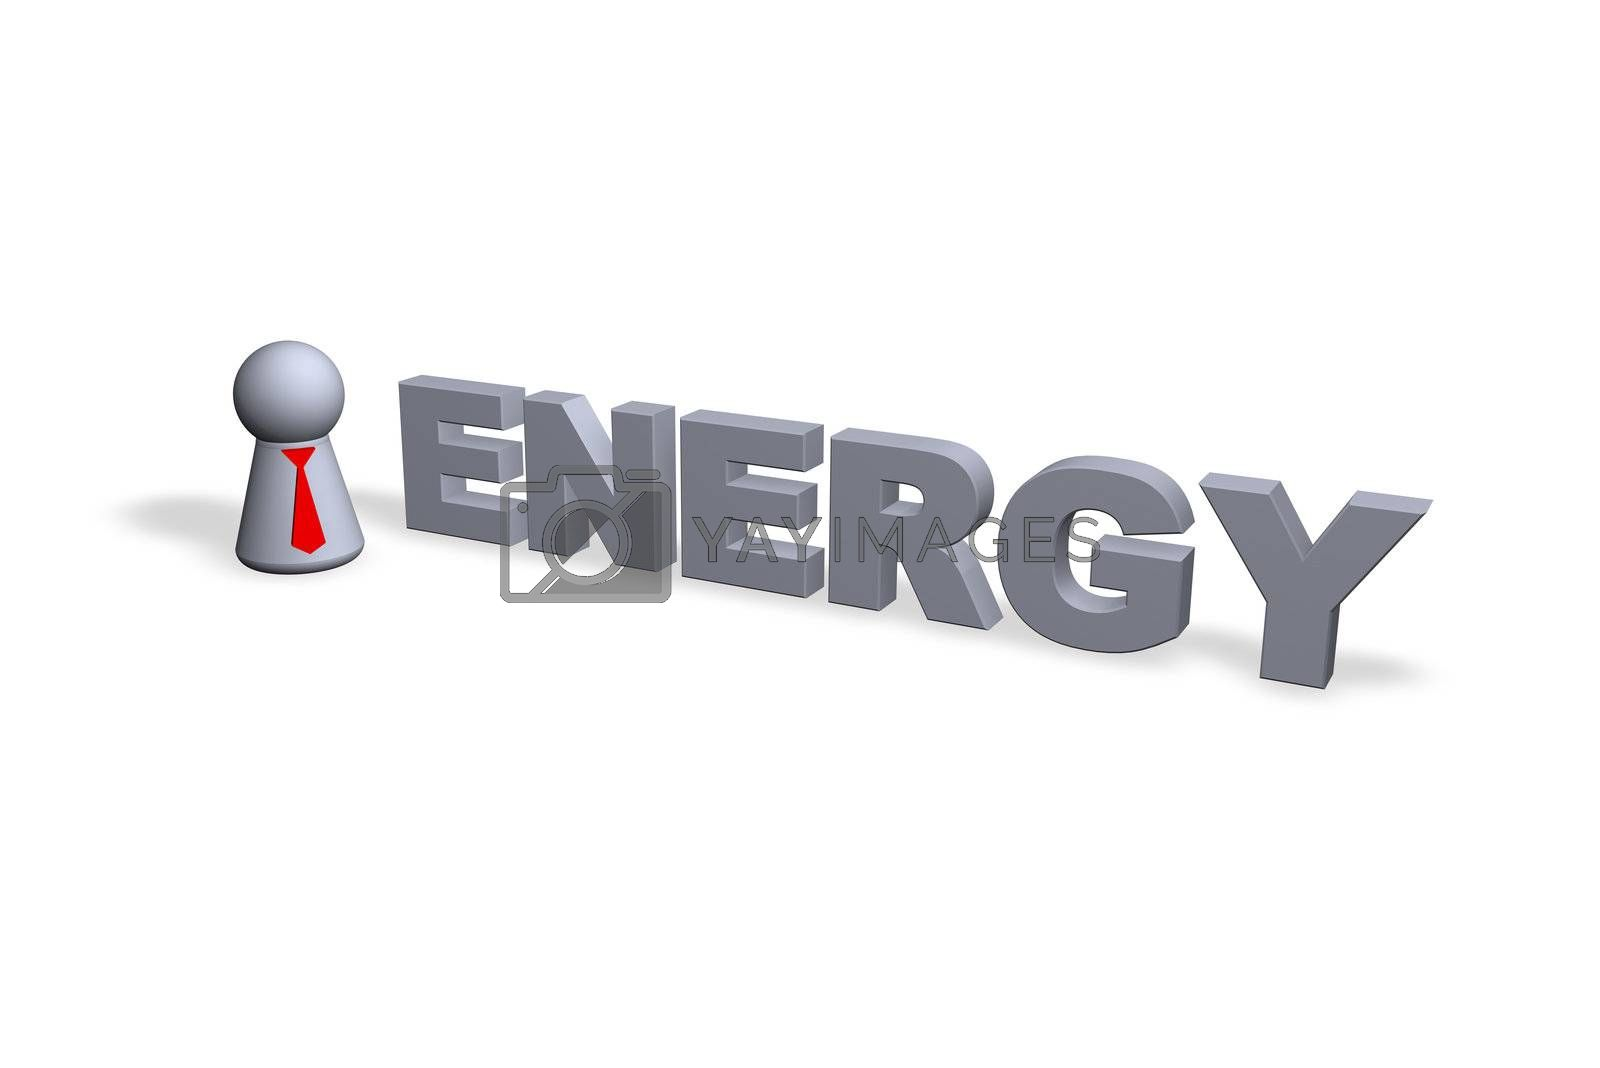 play figure businessman with red tie and energy text in 3d